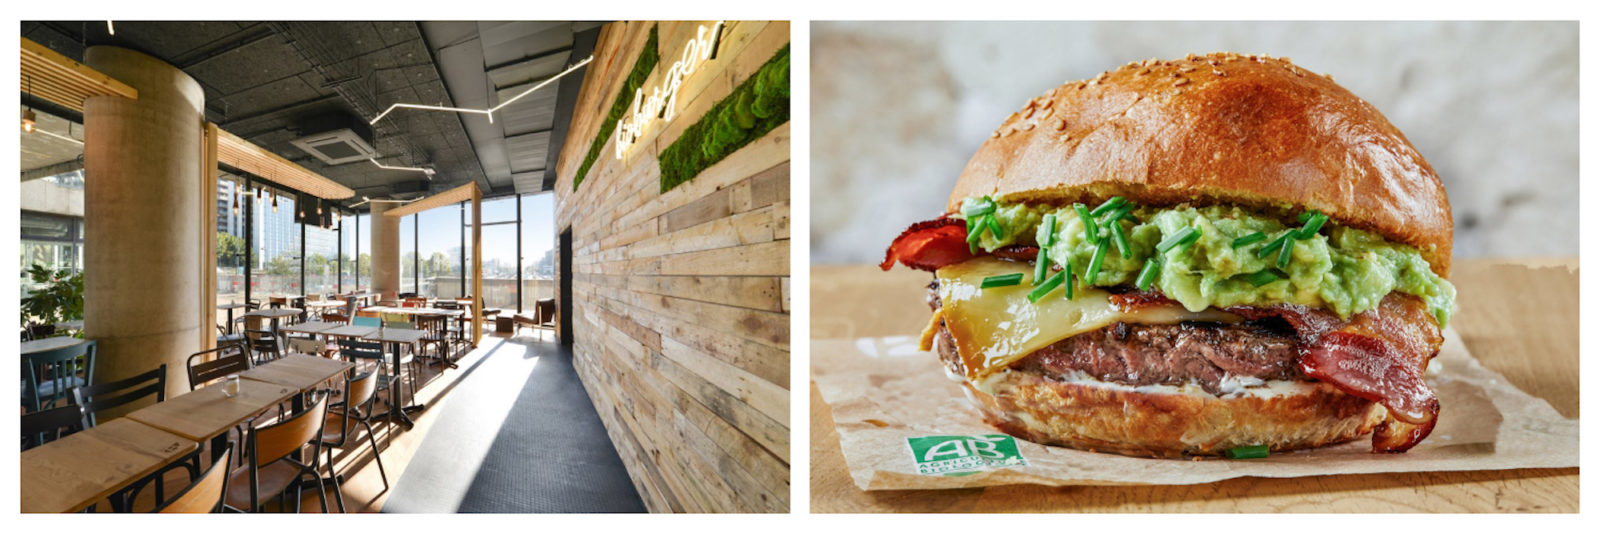 Have a 100% organic burger in Paris at Bio Burger which comes with airy and light timber paneled interiors (left) and serves burgers with 100% organic meat, and fillings like guacamole (right).